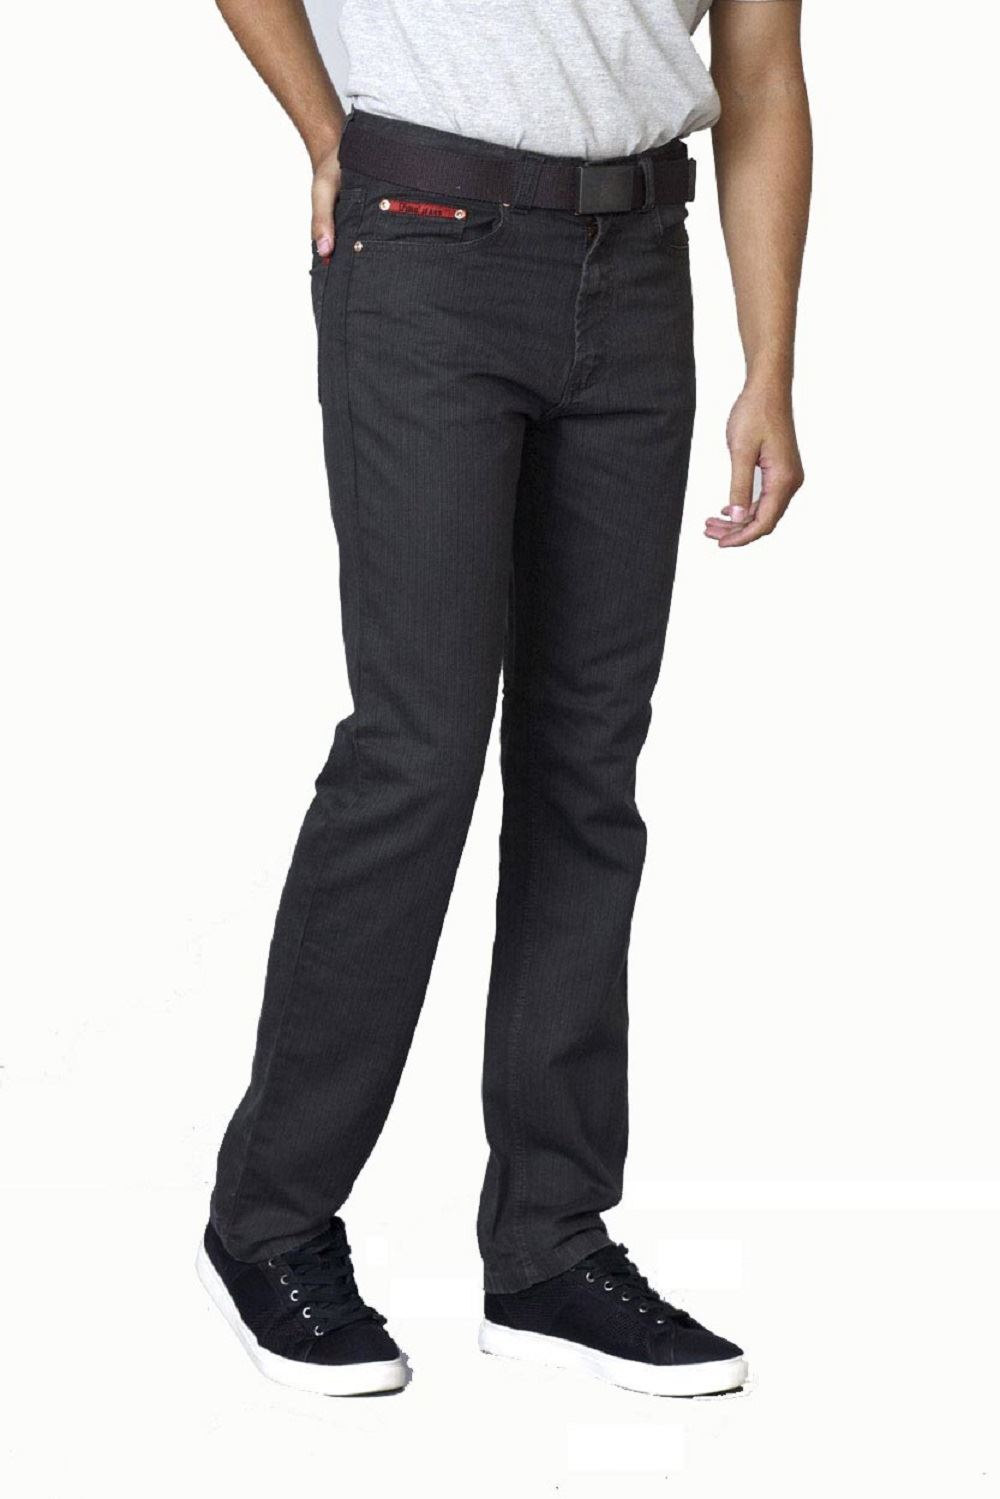 Duke-London-Mens-Big-Size-Bedford-Cord-Enzyme-Washed-Jeans-Canary-in-Charcoal thumbnail 12